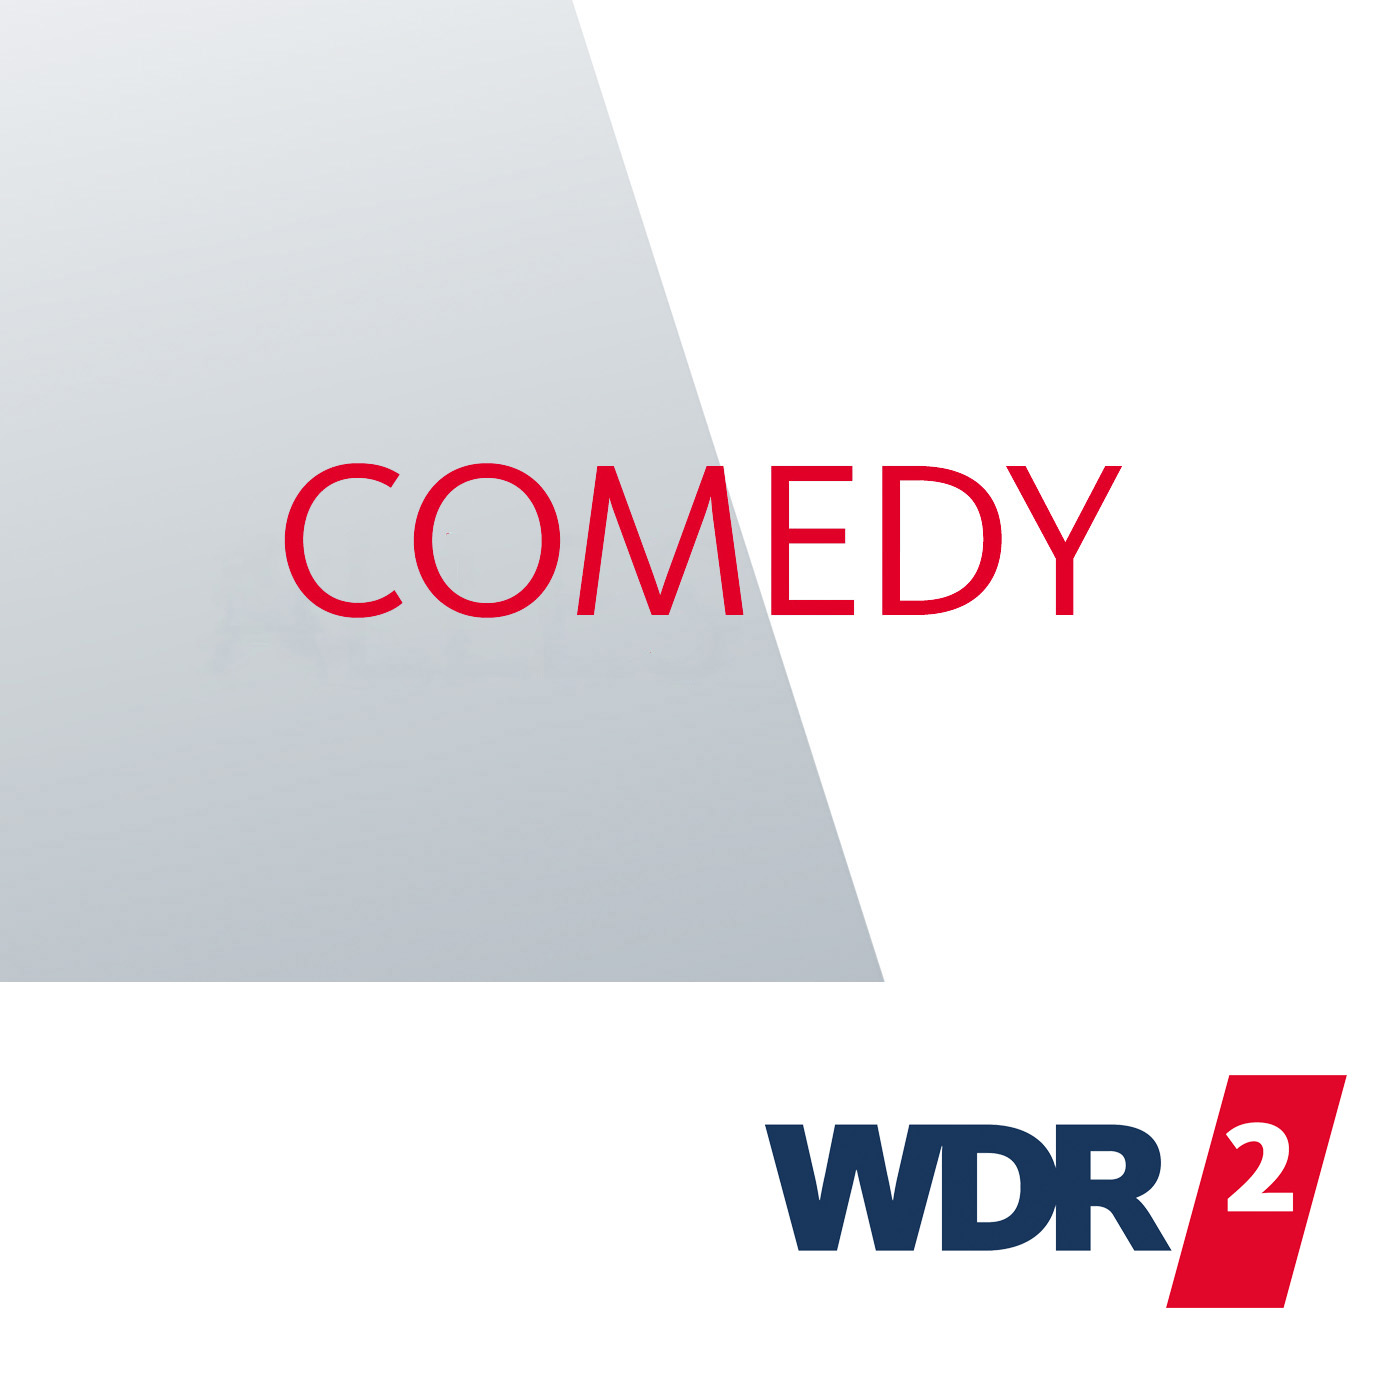 WDR 2 Comedy Podcast by Westdeutscher Rundfunk on Apple Podcasts